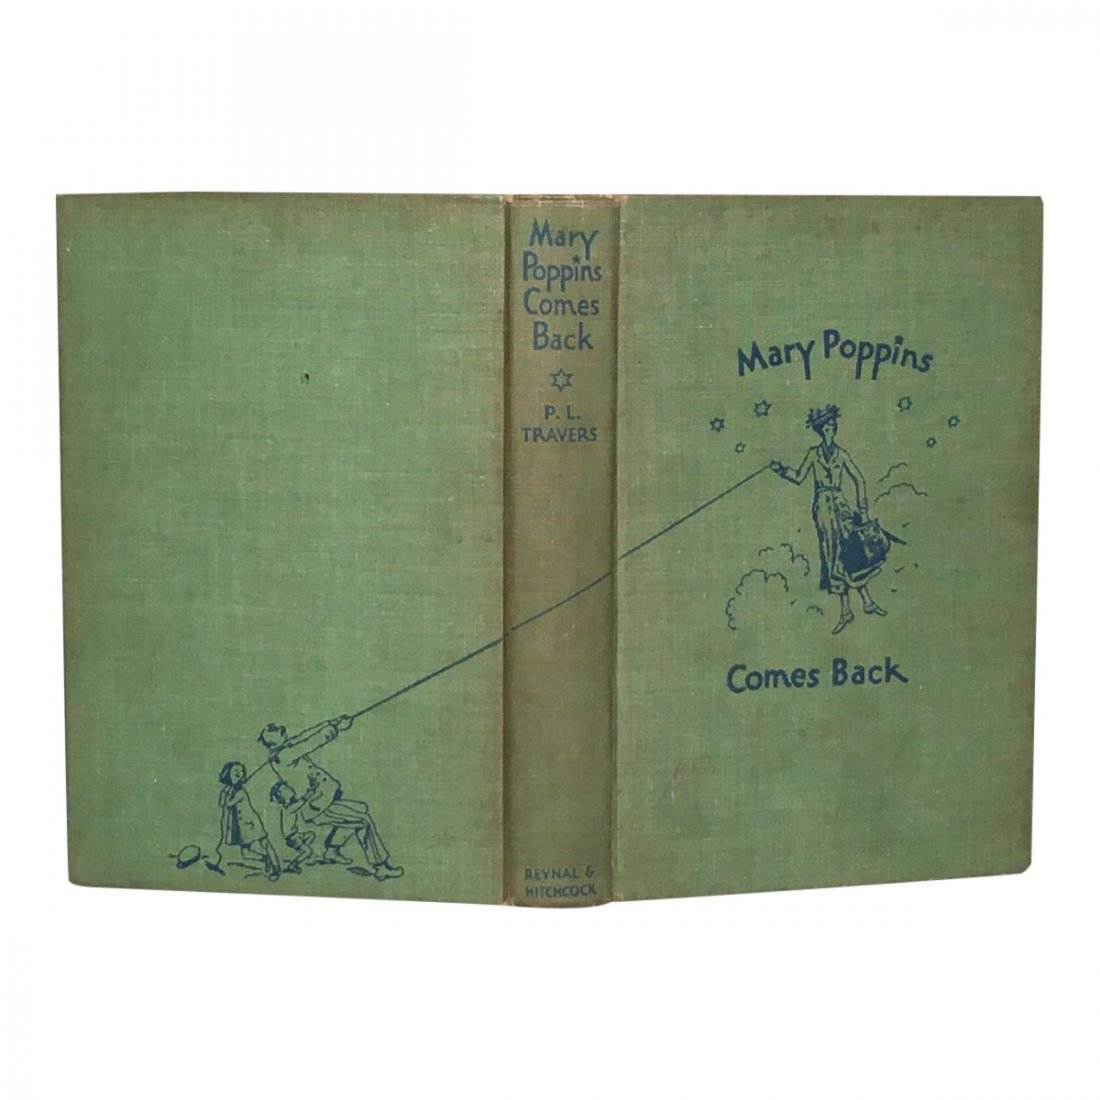 P.L. Travers: Mary Poppins Comes Back